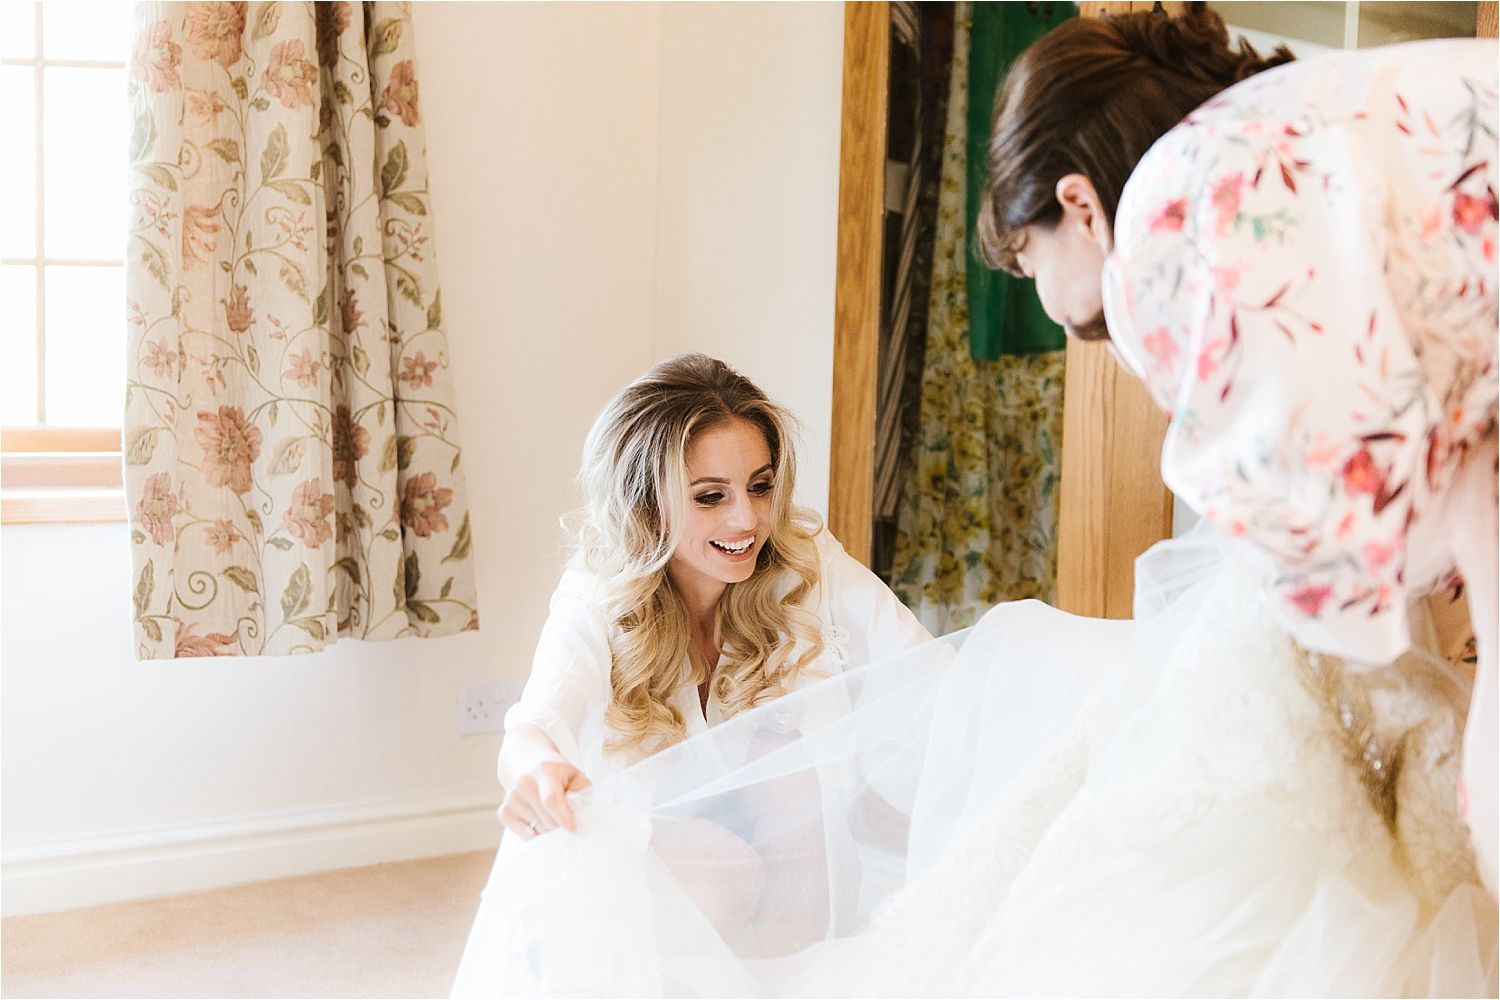 Bride and her mother organising net of wedding dress prior to Congleton wedding, Cheshire